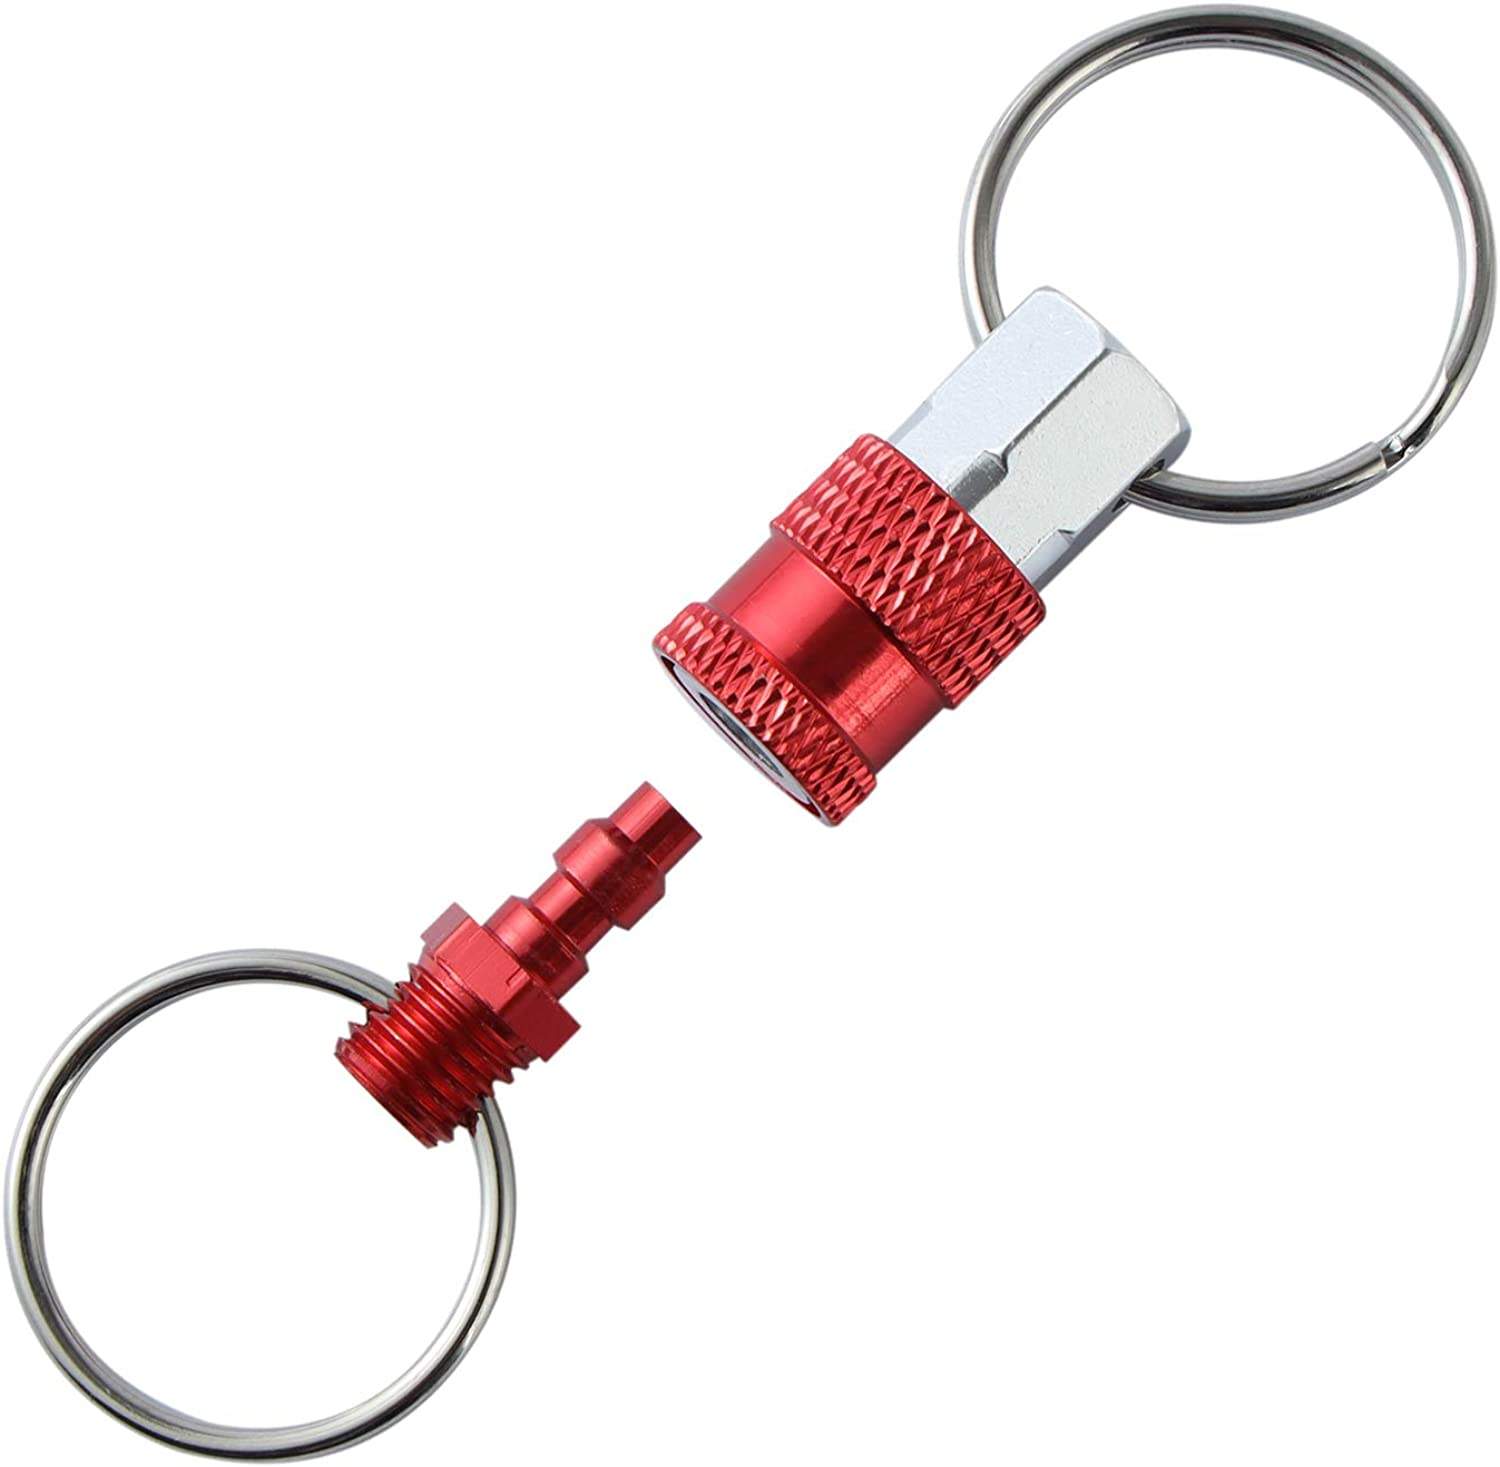 Purse /& Belt Secure Key Attachment to Bag Easy Access to Keys 4 Pack Quick Release Detachable Pull Apart Keychain